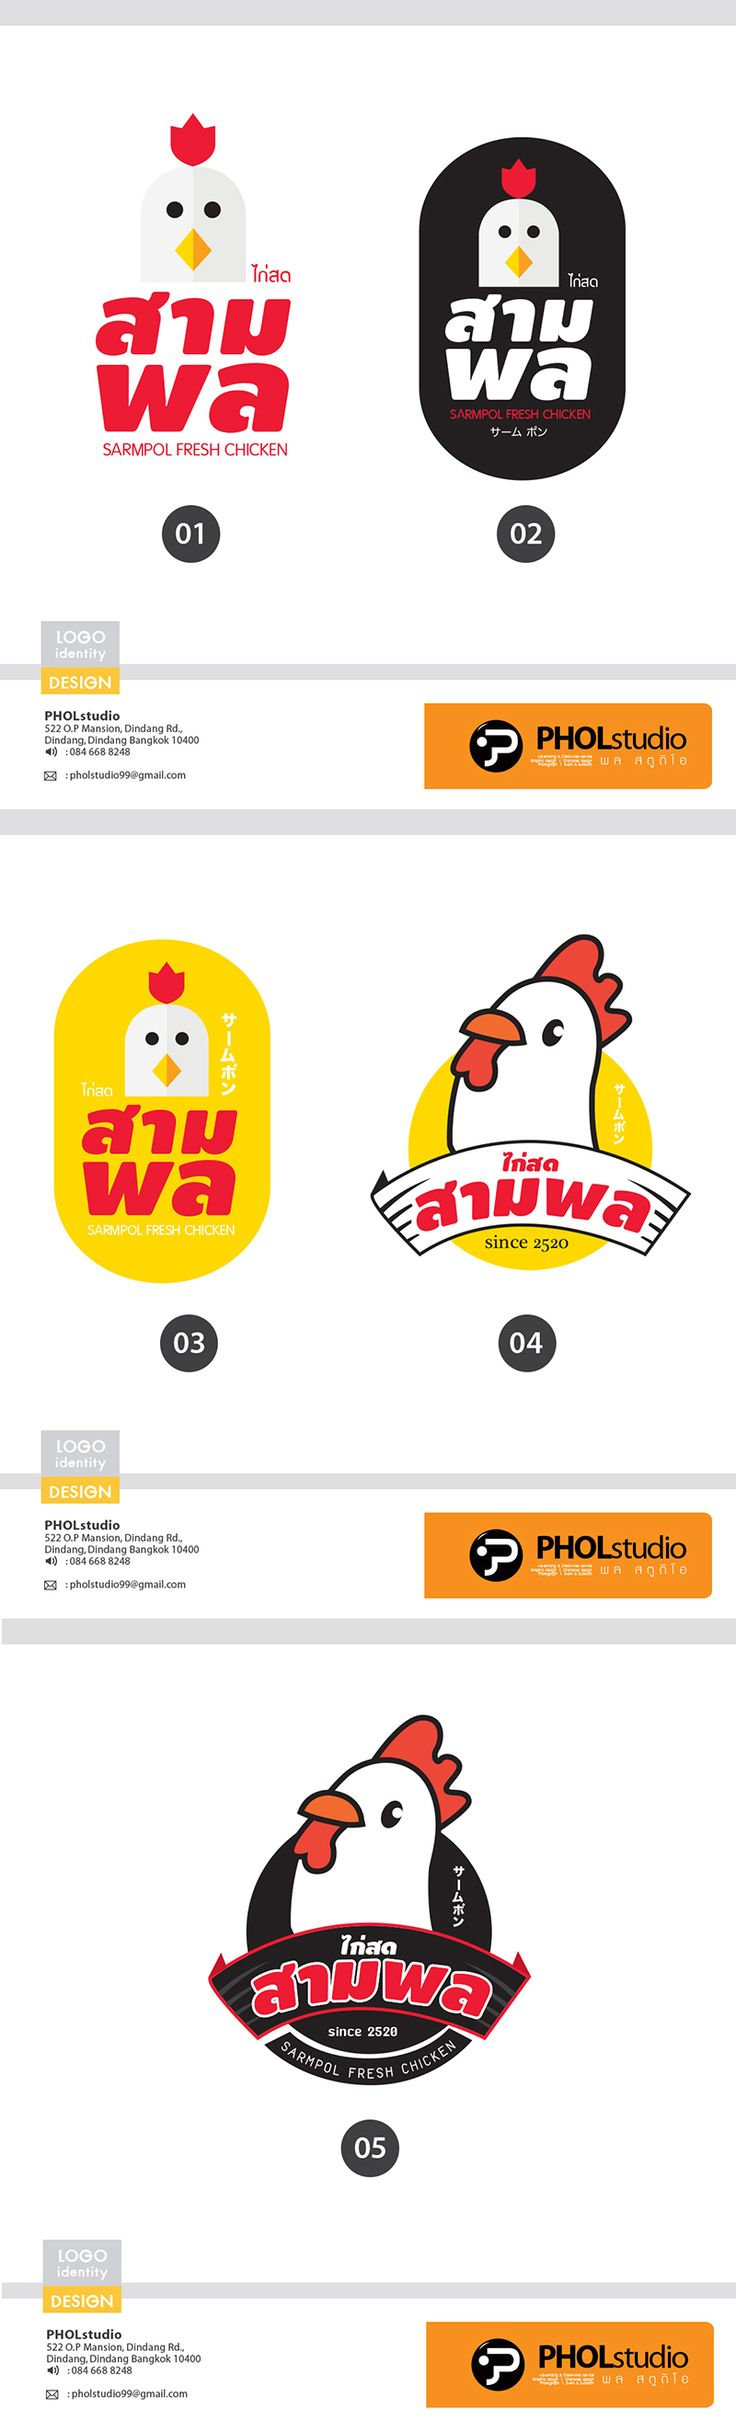 Logo Design Client :: Sarmpol Fresh Chicken